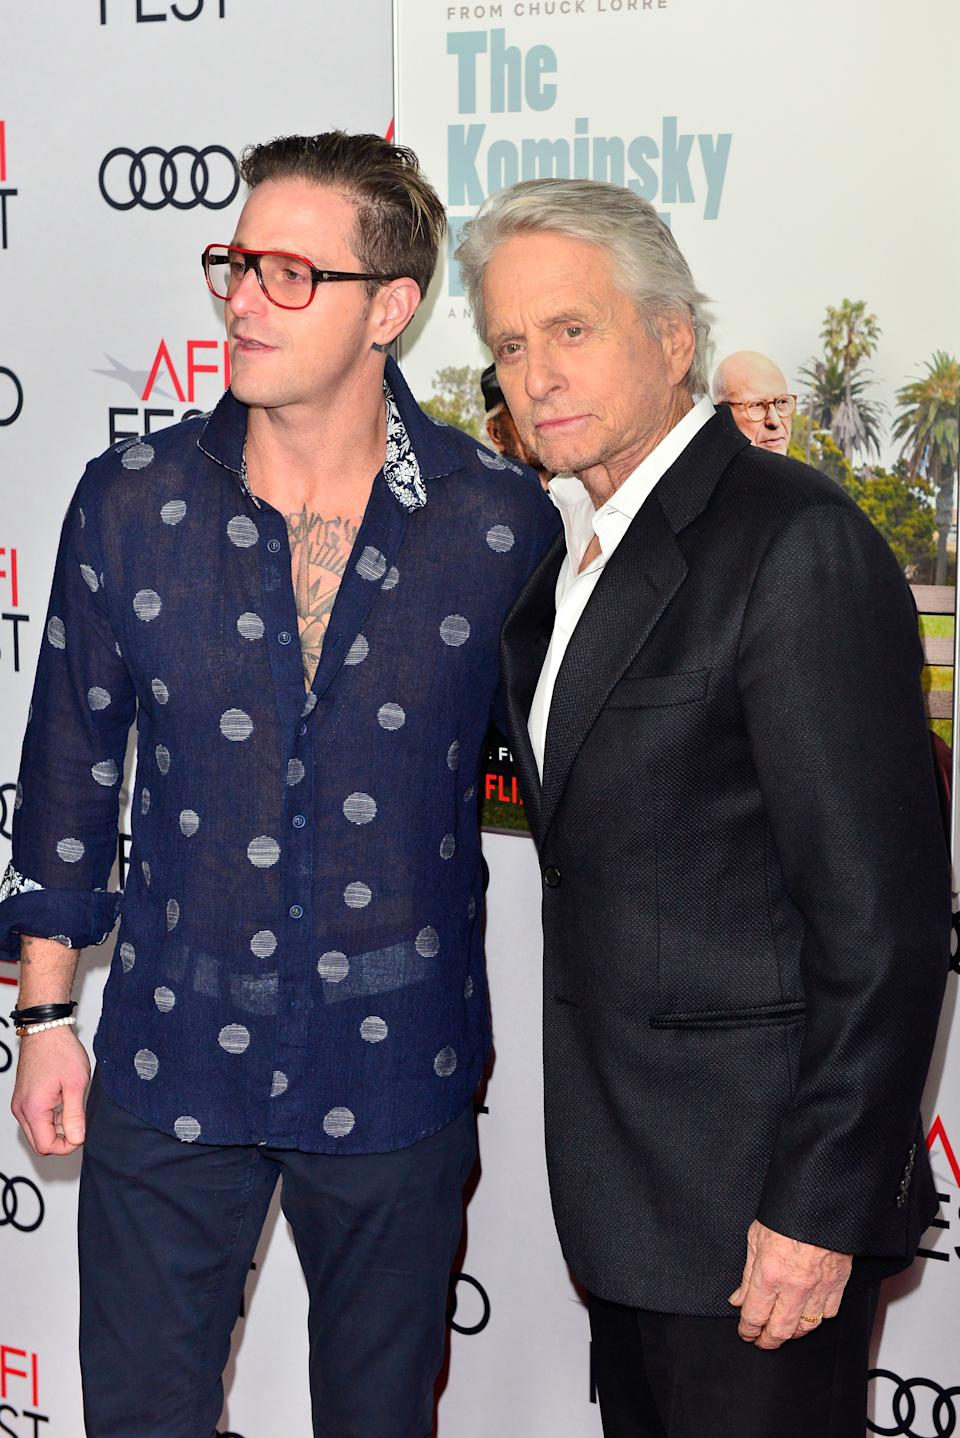 """Cameron Douglas (L) and Michael Douglas attend the Gala Screening of """"The Kominsky Method"""" at AFI FEST 2018 Presented By Audi at TCL Chinese Theatre on November 10, 2018 in Hollywood, California.  (Photo by Jerod Harris/Getty Images)"""